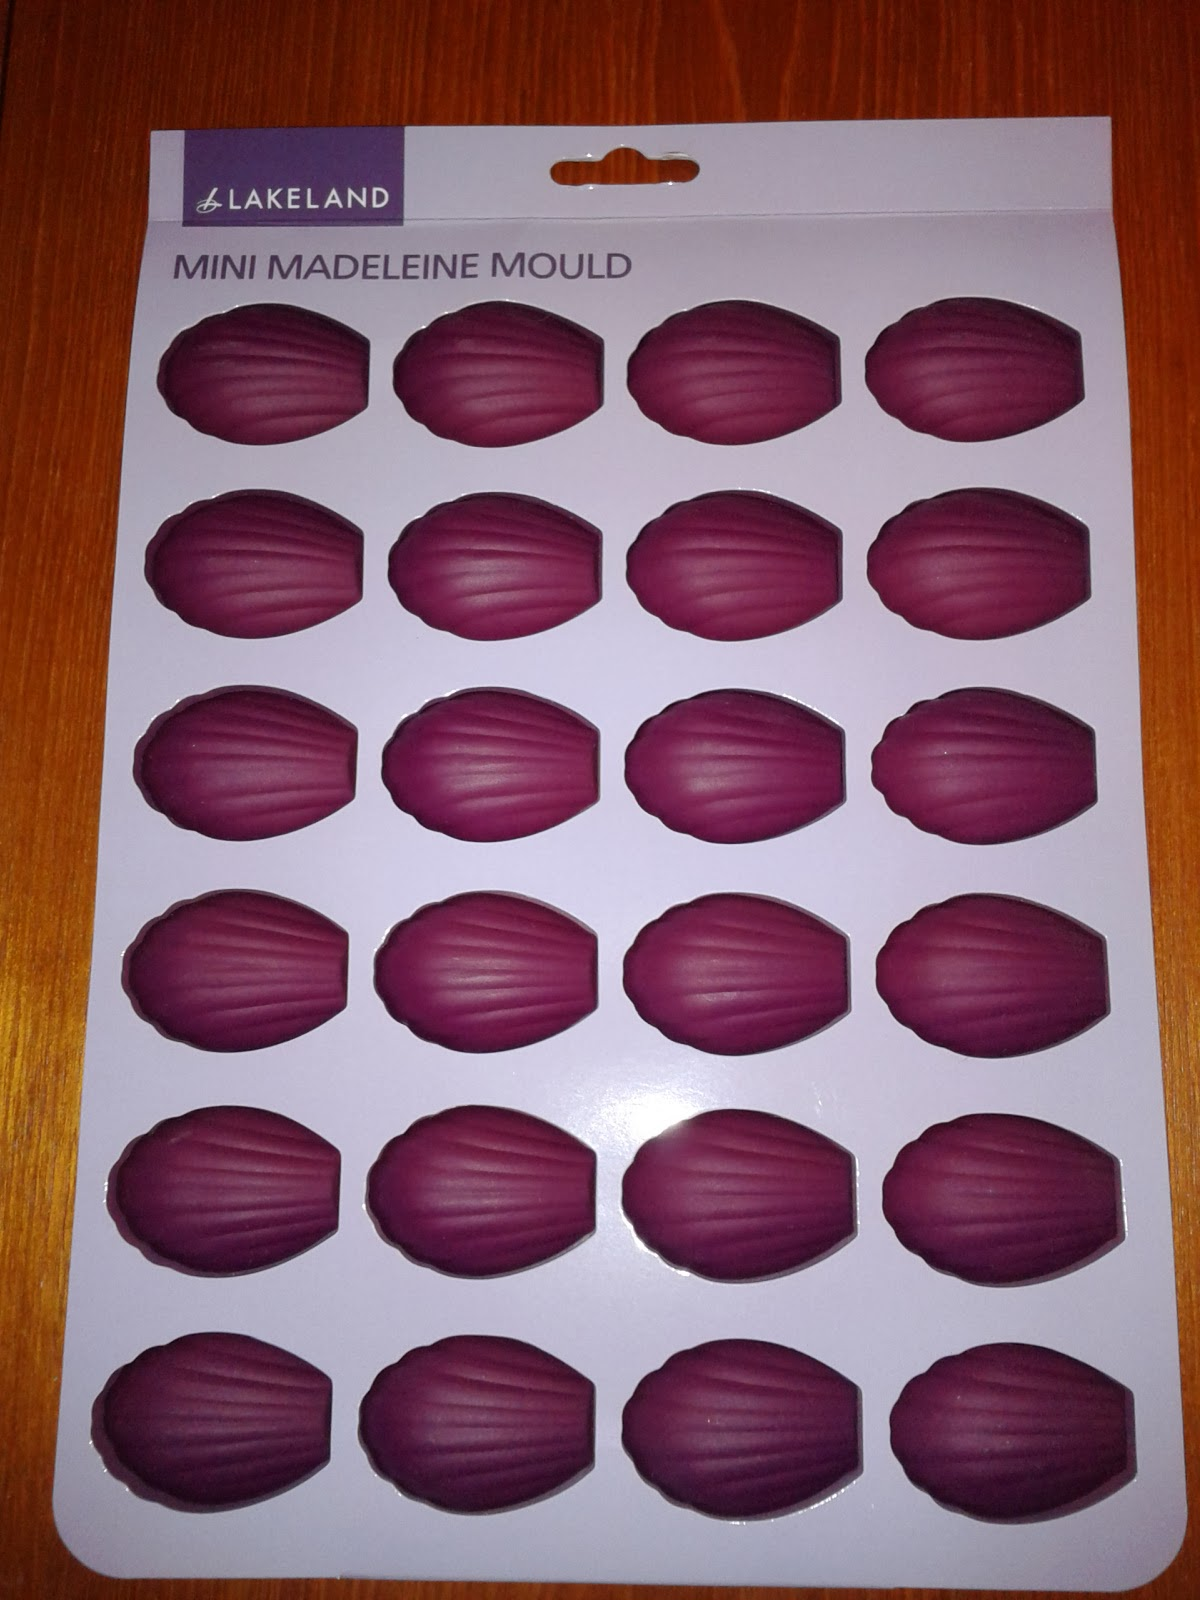 Lakeland mini madeleine mould